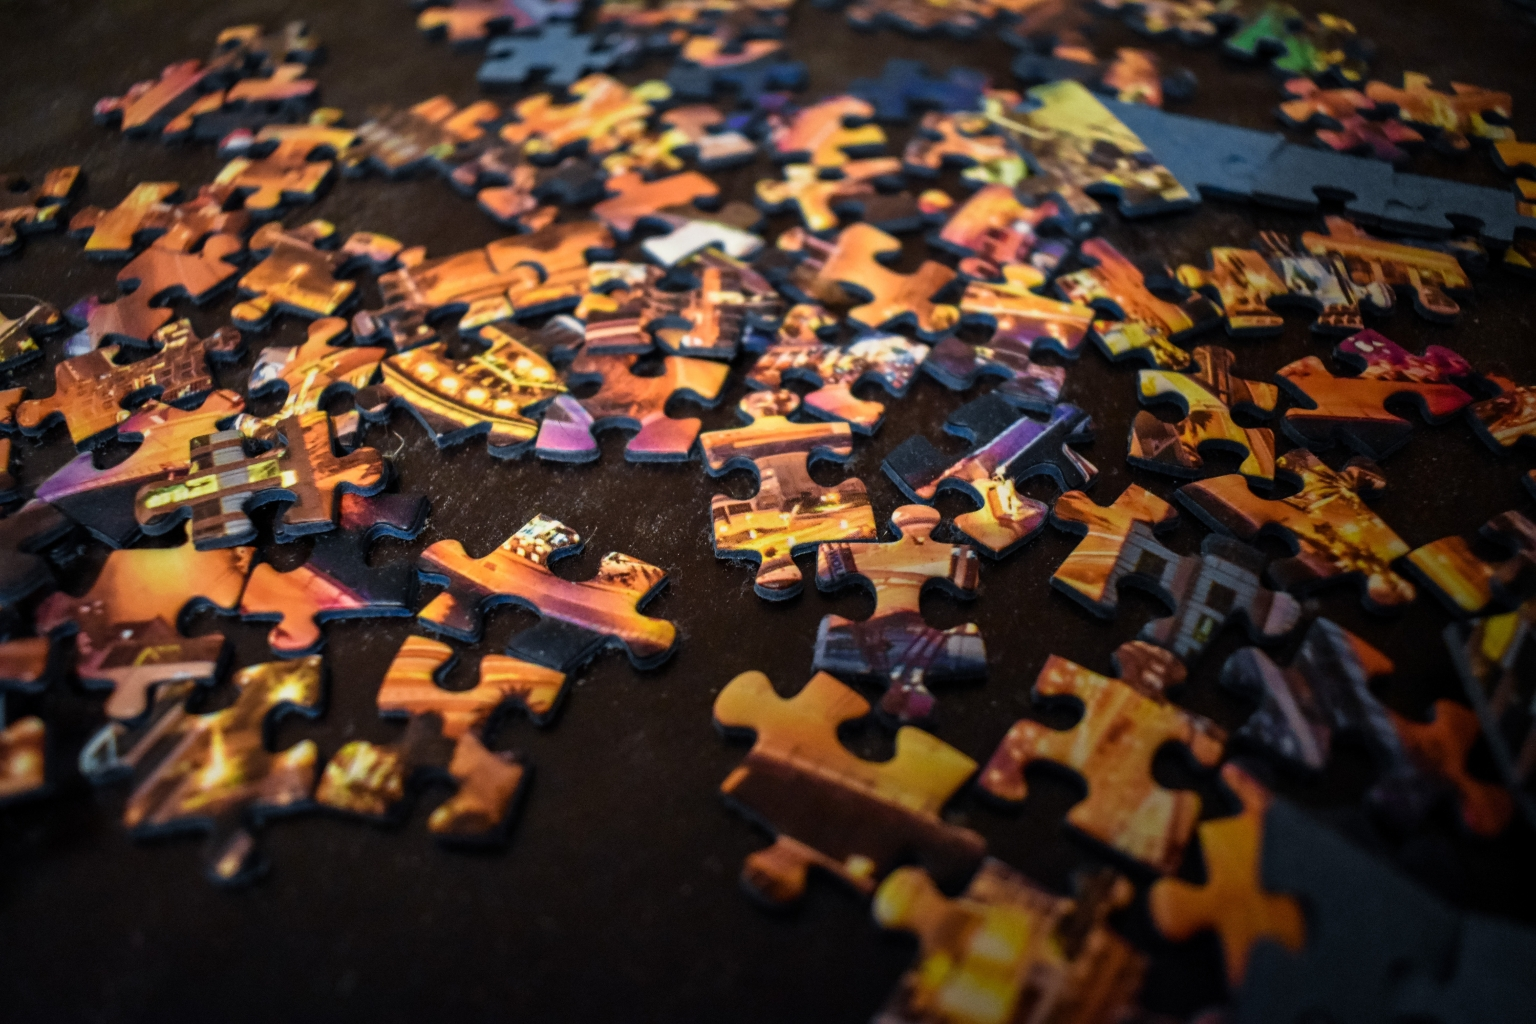 How Did Jigsaw Puzzles Become a Popular Pastime?